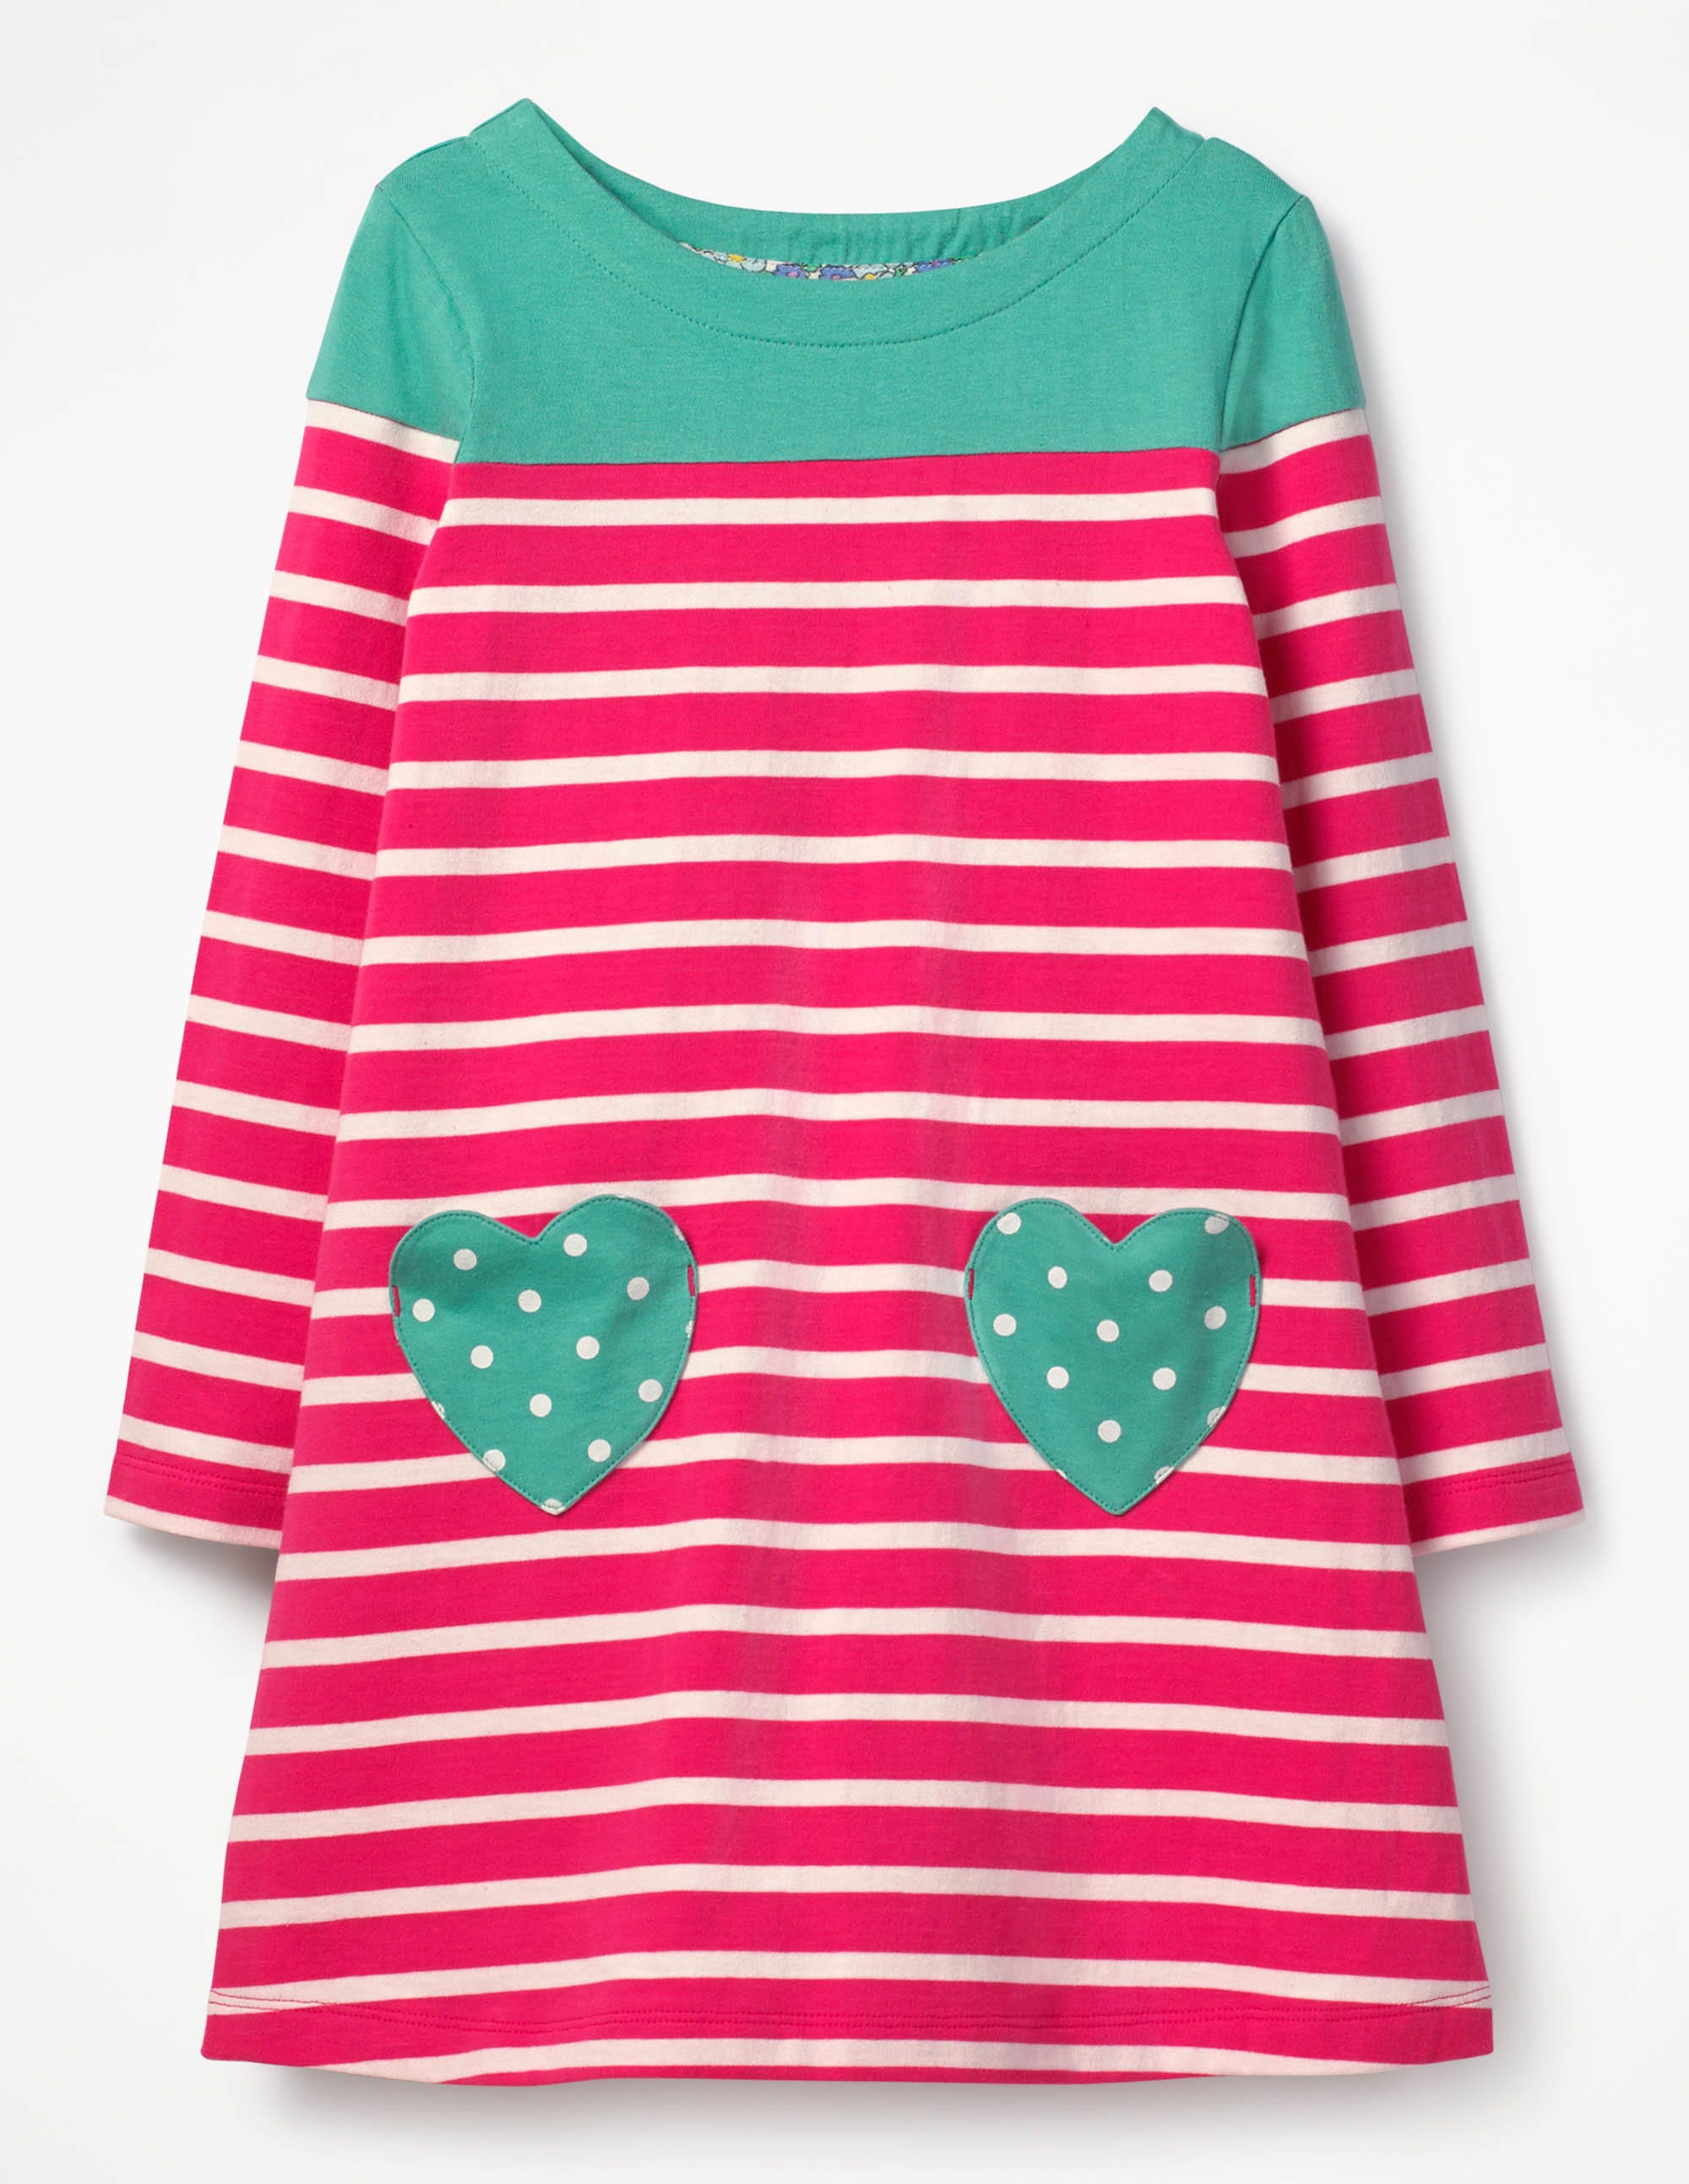 4ac7b6817 Heart Pocket Jersey Dress - Strawberry Split Pink/Ecru | Boden US